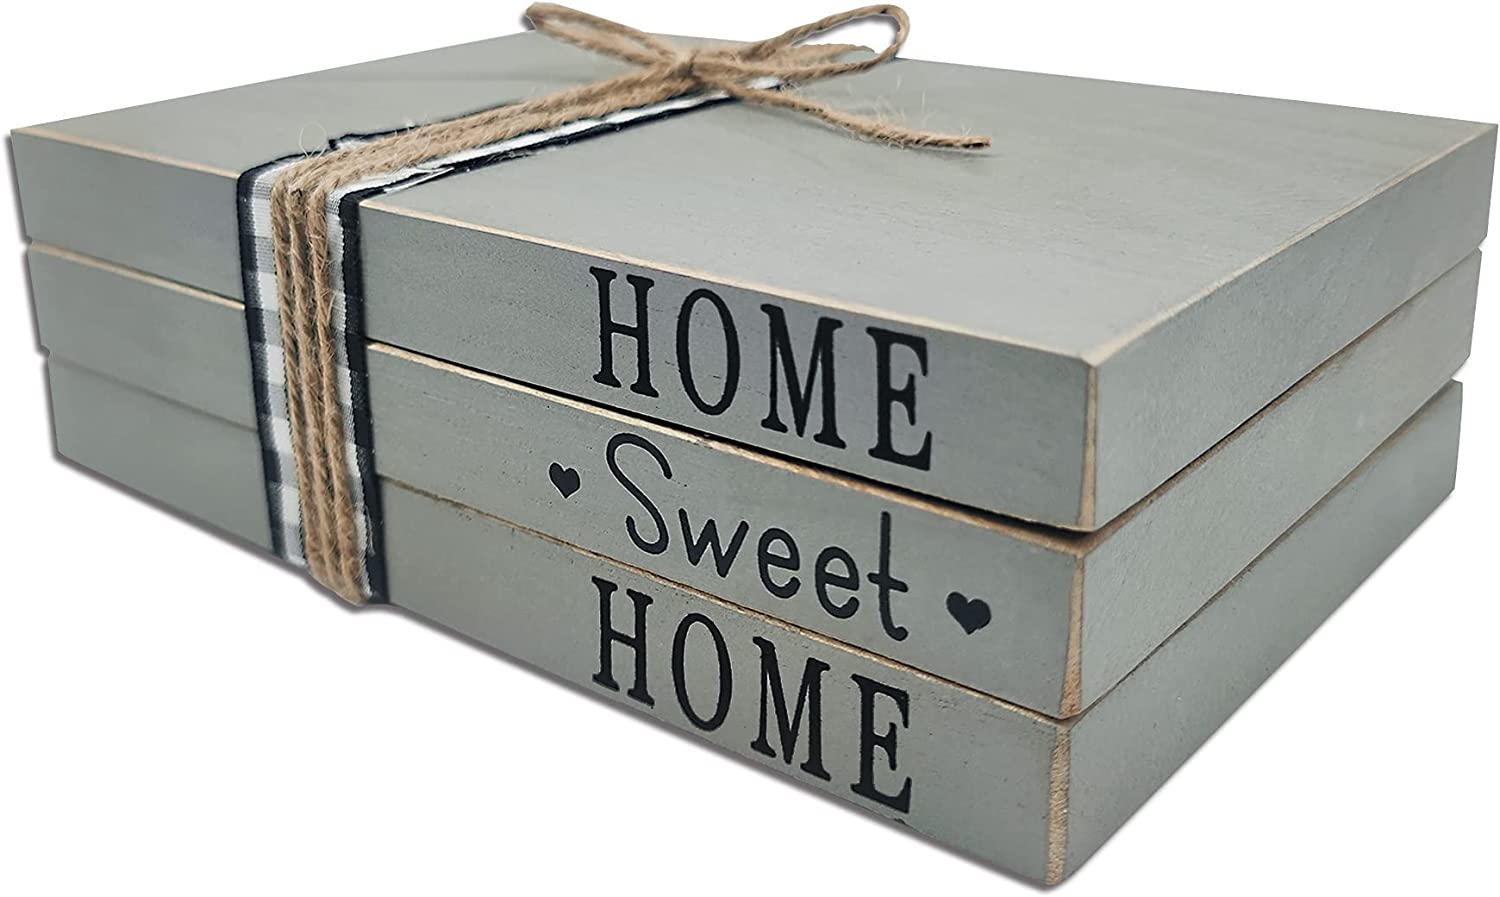 cocomong Decorative Books for Coffee Table, Modern Farmhouse Decor for Fireplace Mantle, Home Sweet Home Decor, Wooden Fake Book Stack, Grey Faux Books Decorations for Entryway Table, Tiered Tray